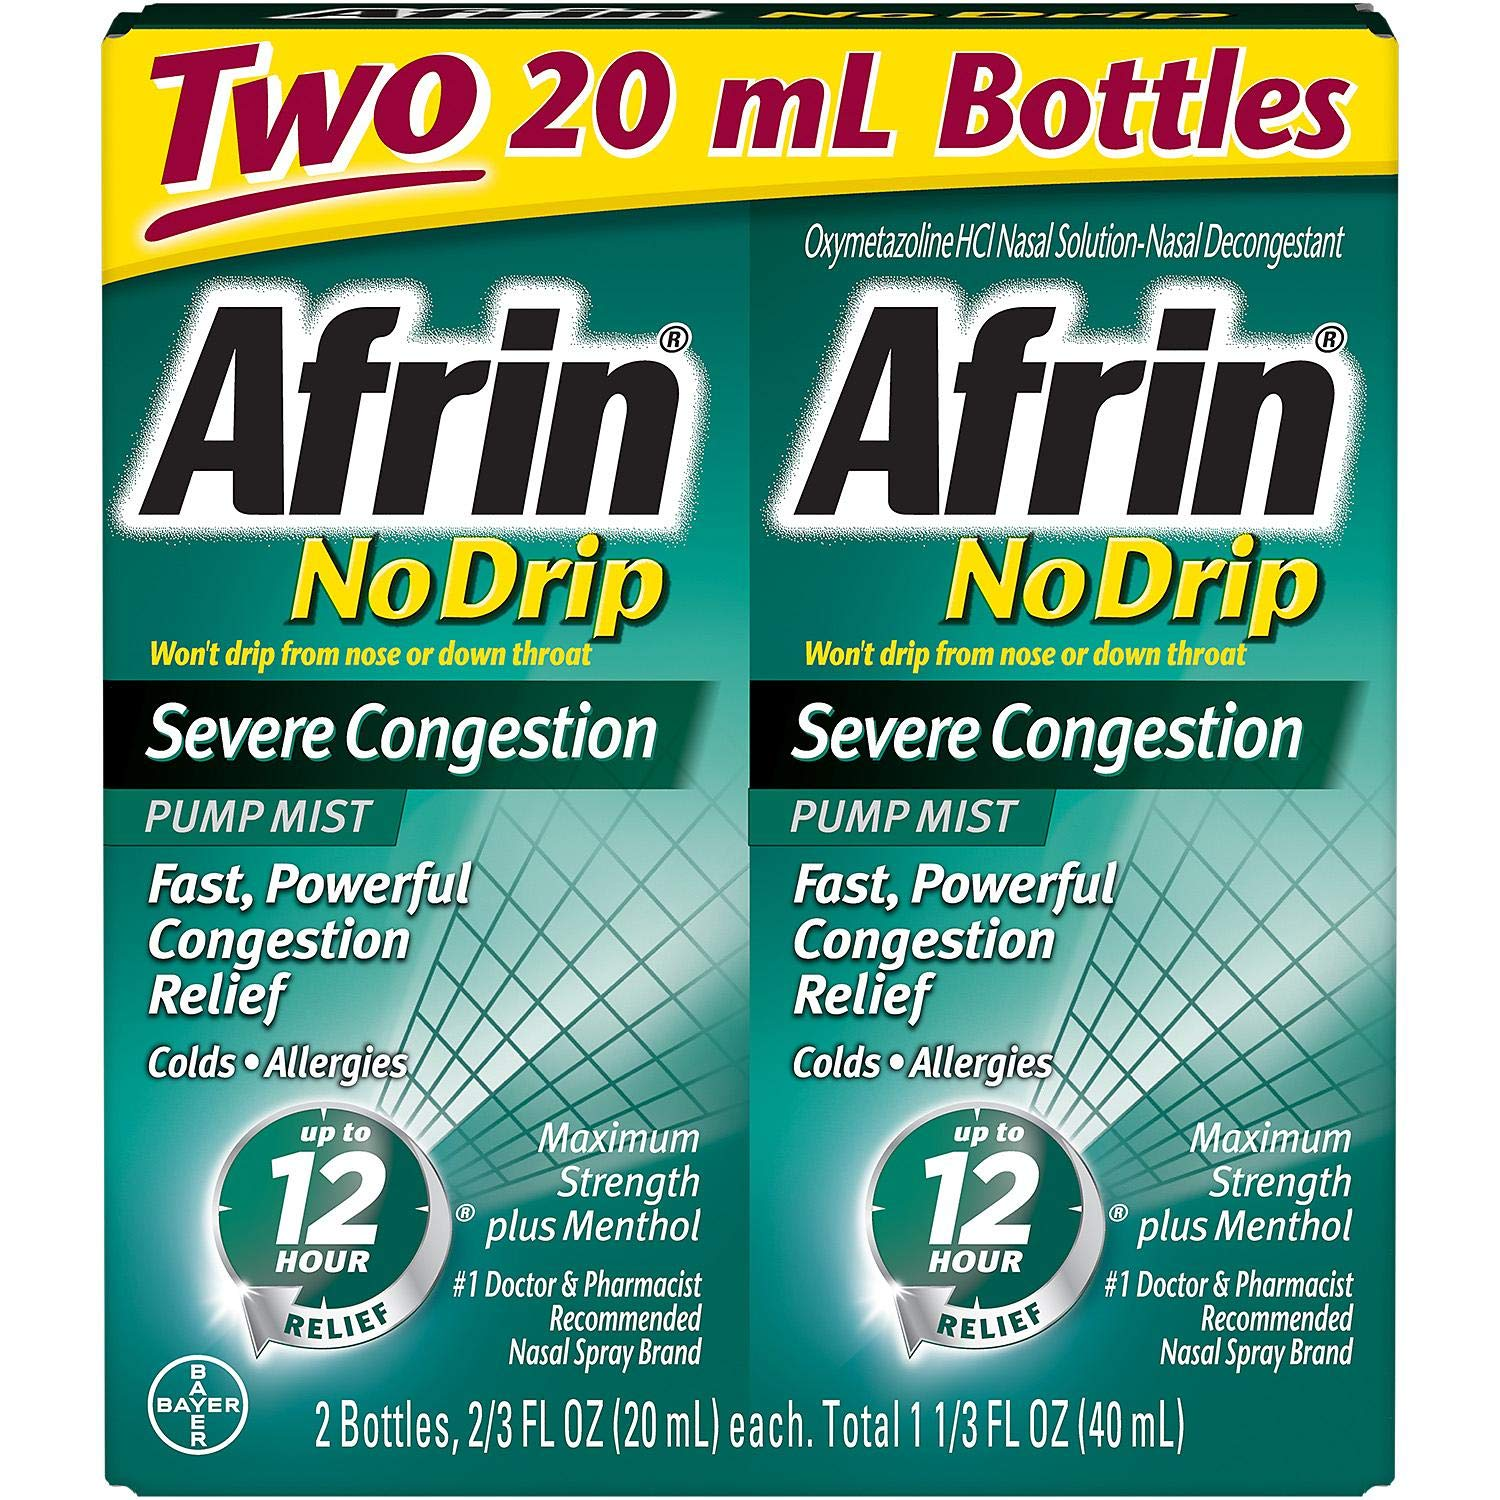 Afrin No Drip Severe Congestion - VarietySize Pack of 4 BottleS (20ml Each) by Afrin